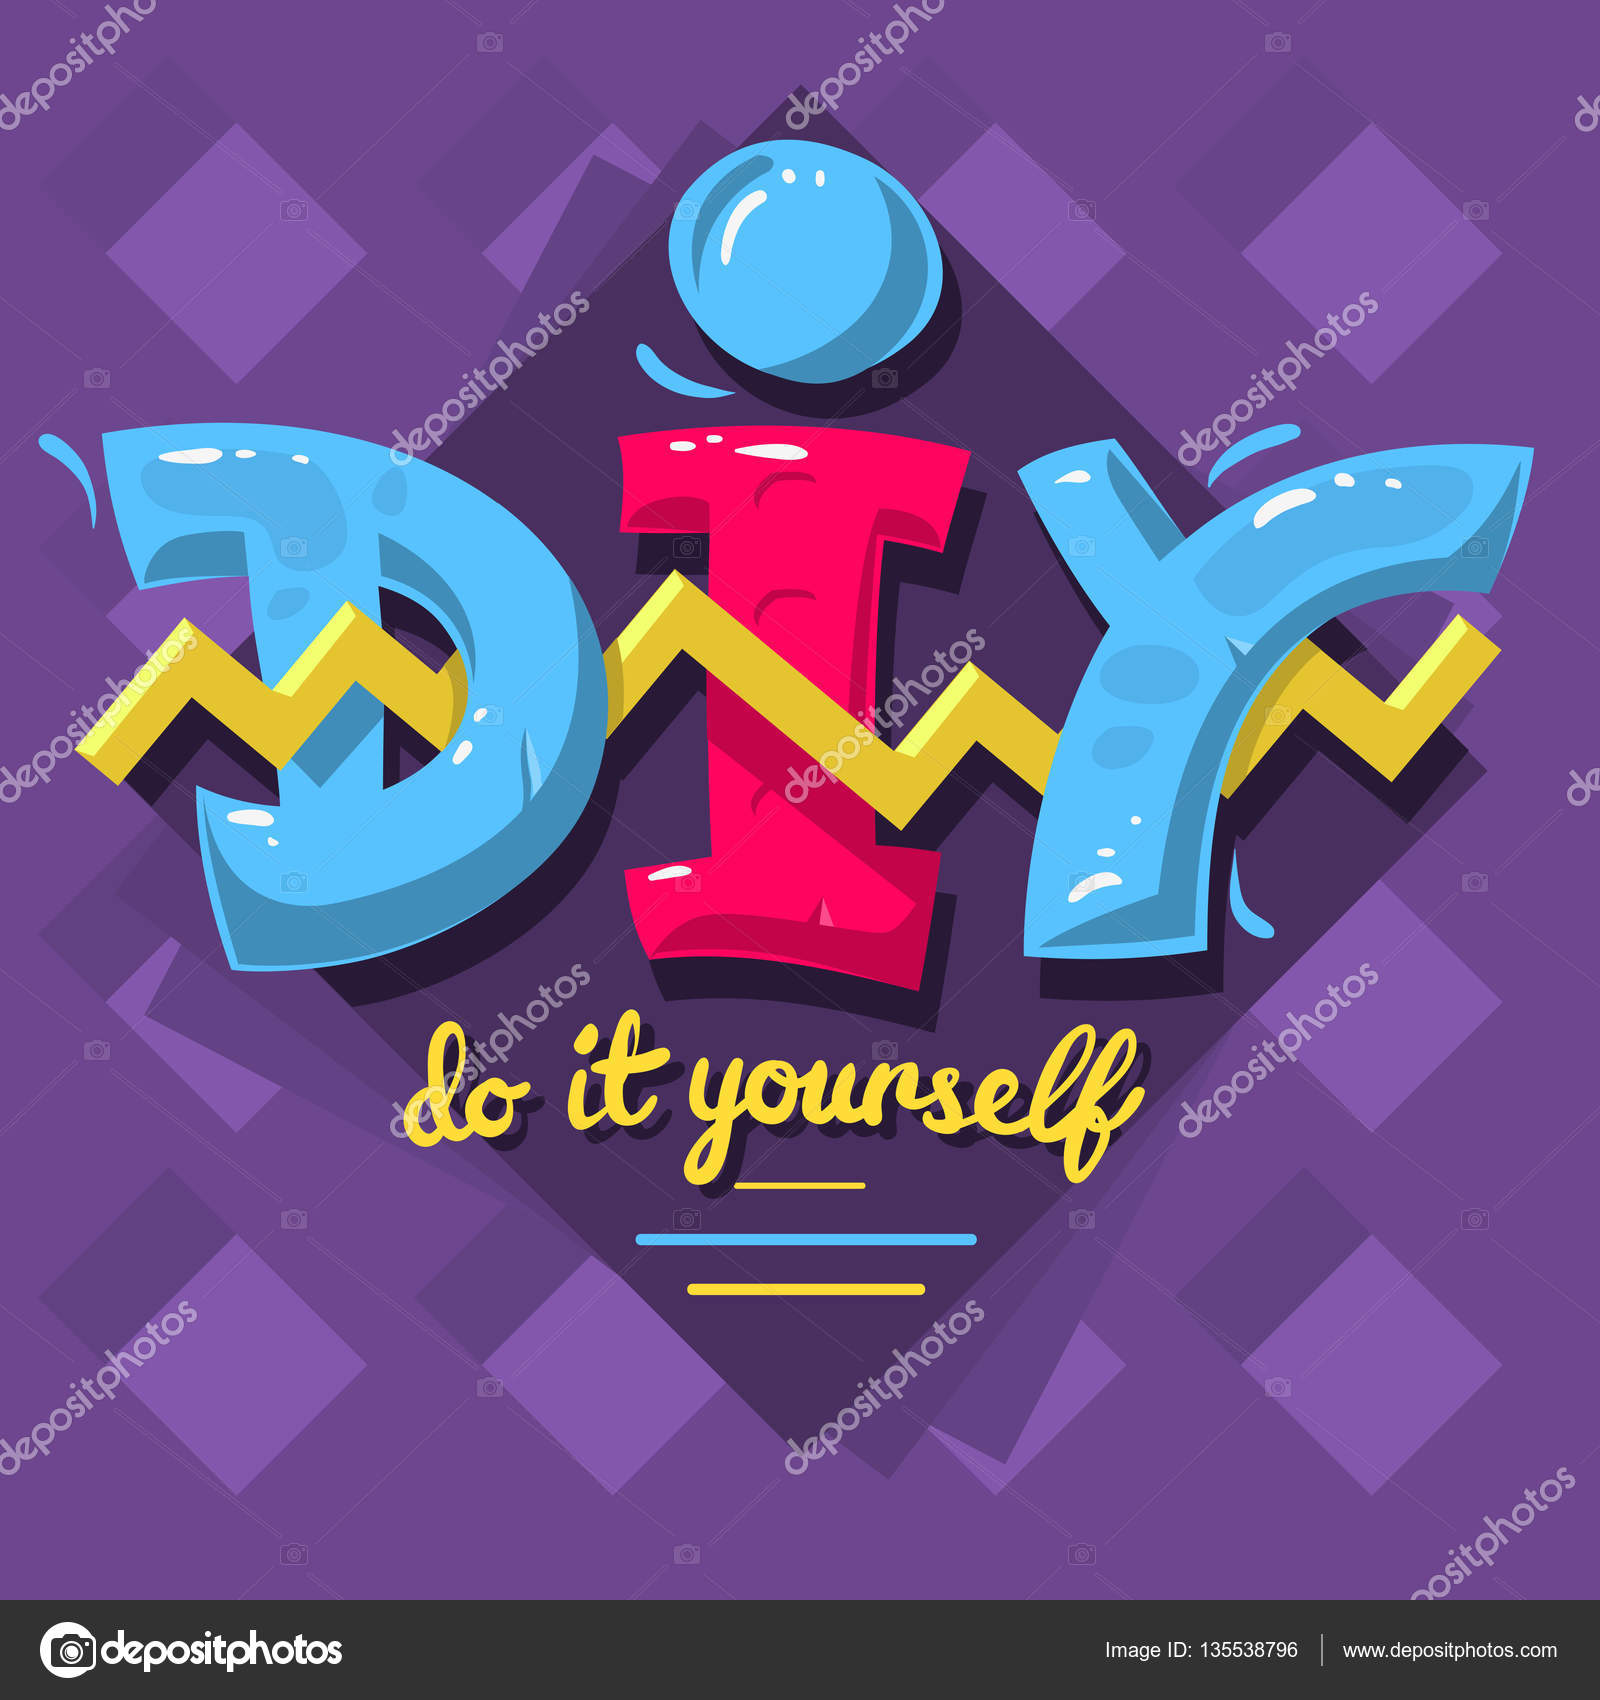 Diy acronym do it yourself 90 s vibrant colors aesthetic typ diy acronym do it yourself 90 s vibrant colors aesthetic typ stock vector solutioingenieria Gallery